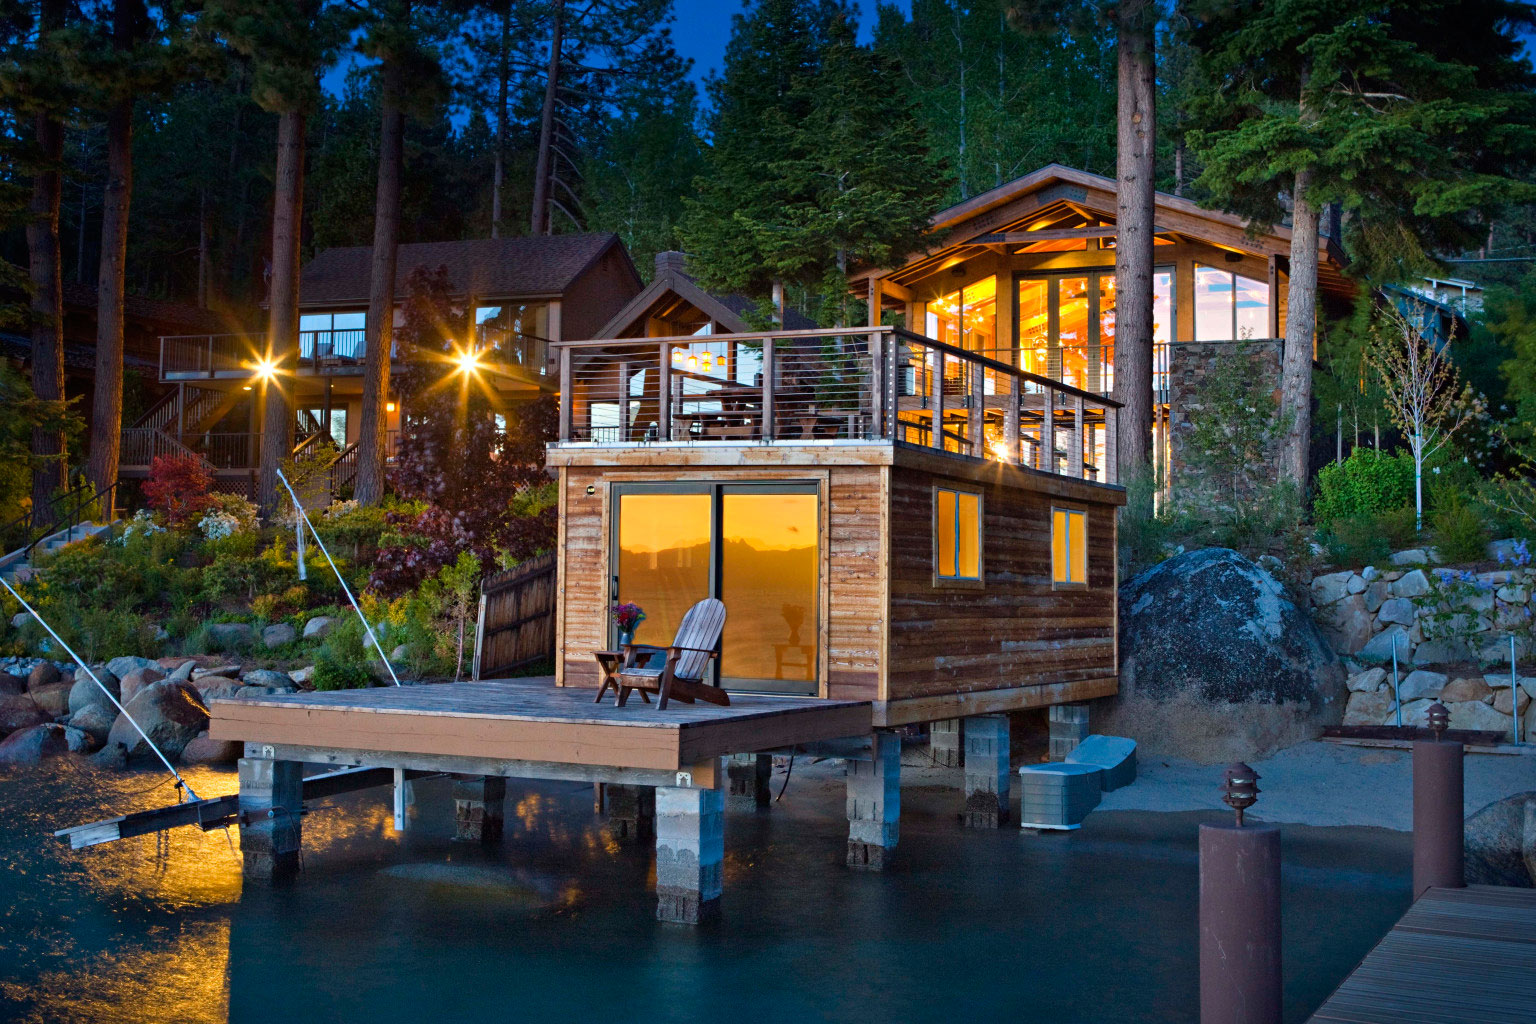 Lake-cabin-design-ideas-that-will-wow-you-10 lake cabin design ideas that will inspire you